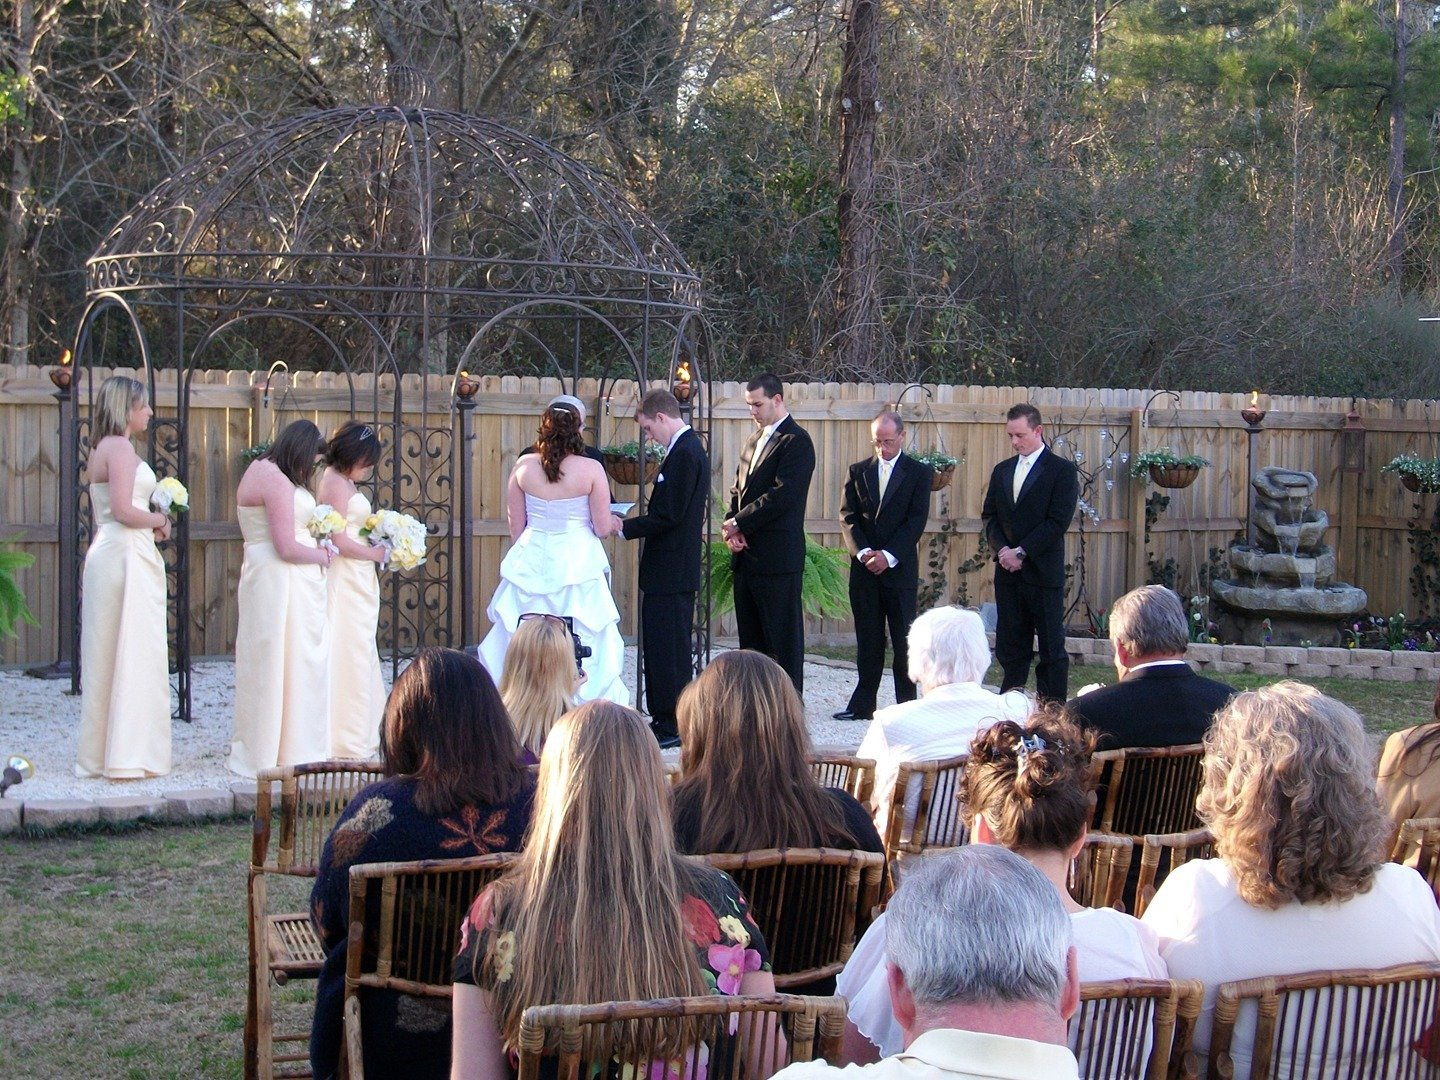 Browse The Photo Gallery To See Some Of Beautiful Ceremonies Held At Memory Lane